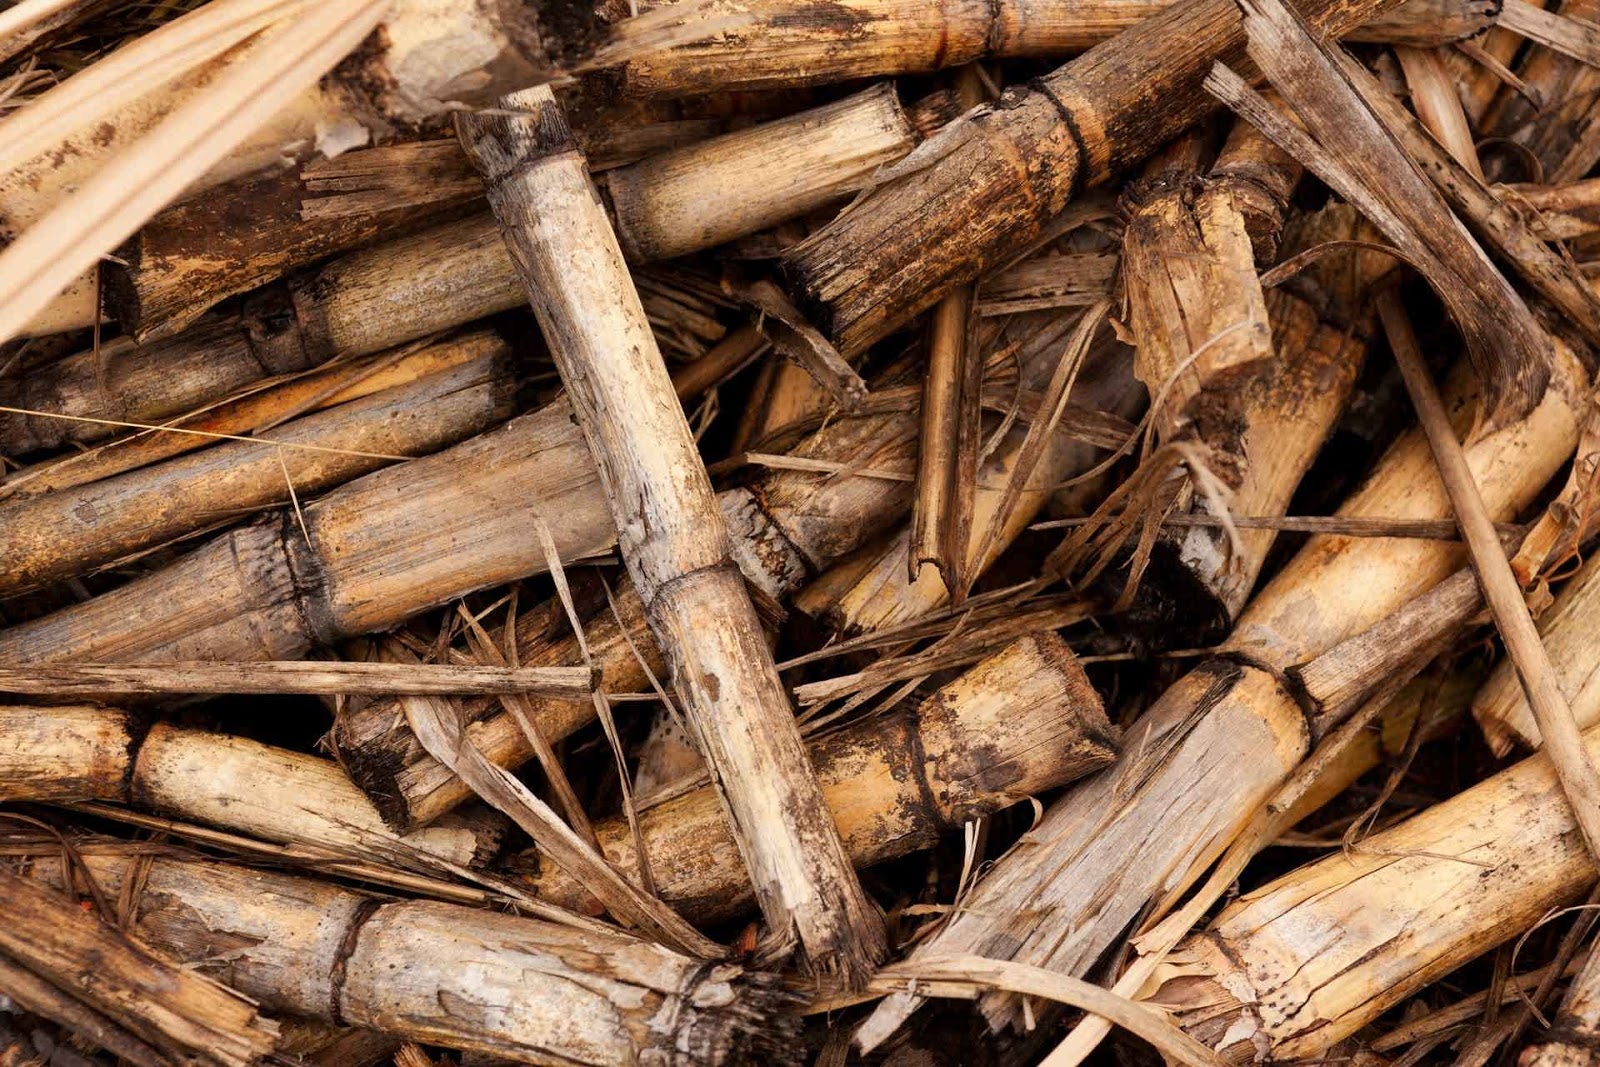 Biomass energy pros and cons